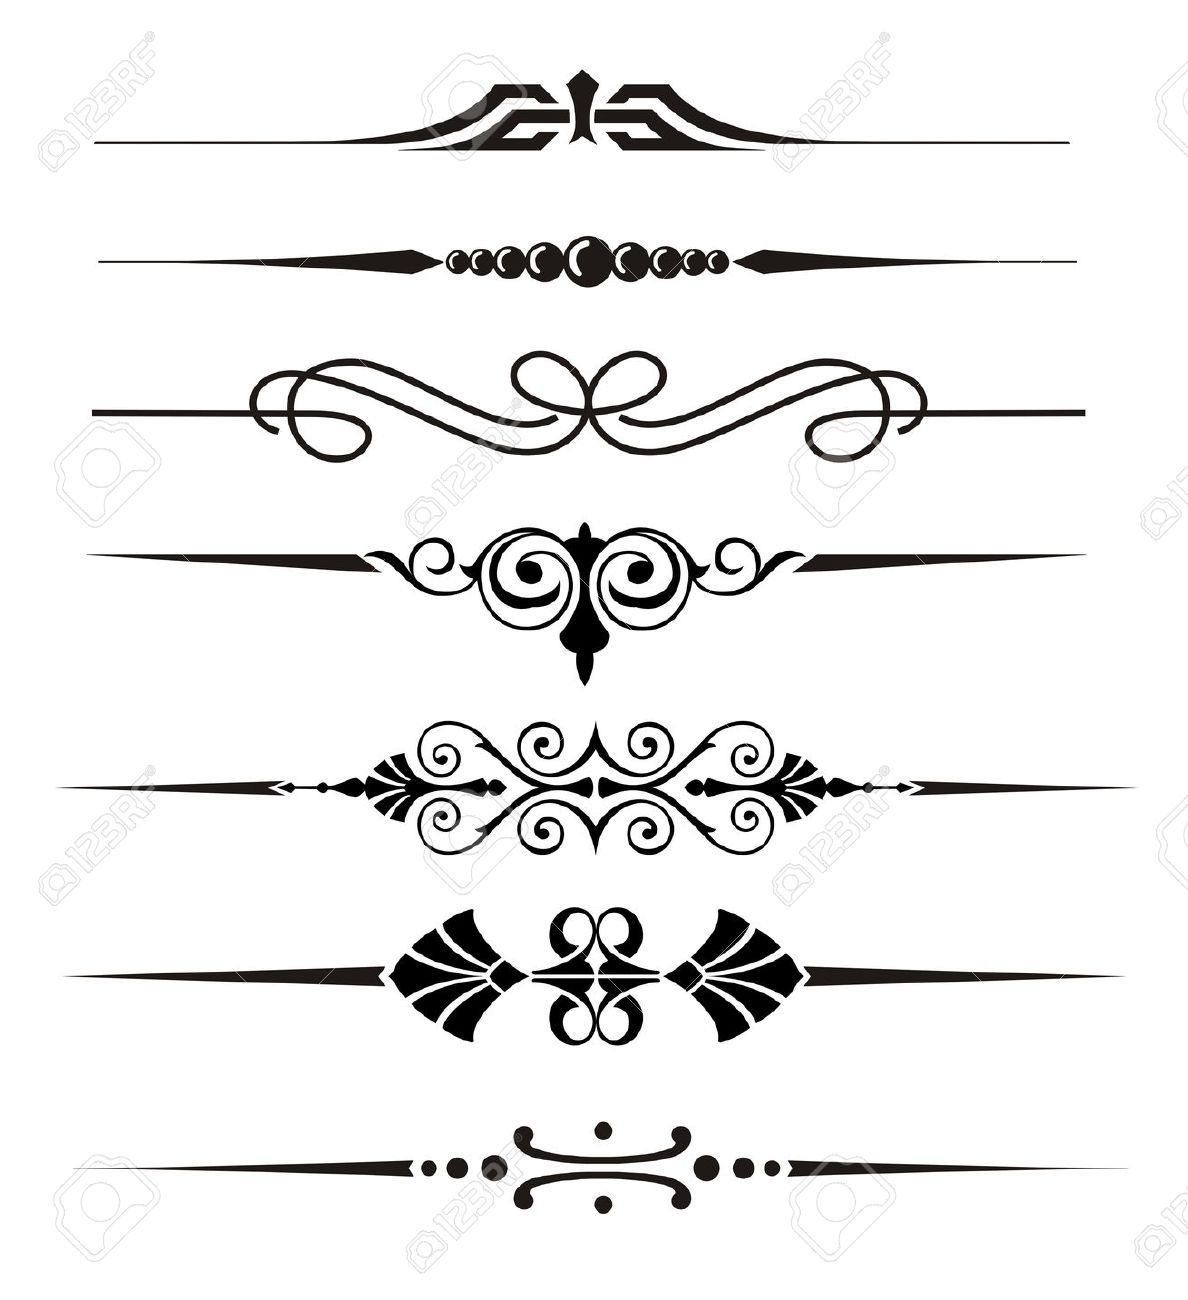 Vecter Divider Ornaments And Graphical Elements Royalty Free Cliparts Vectors And Stock